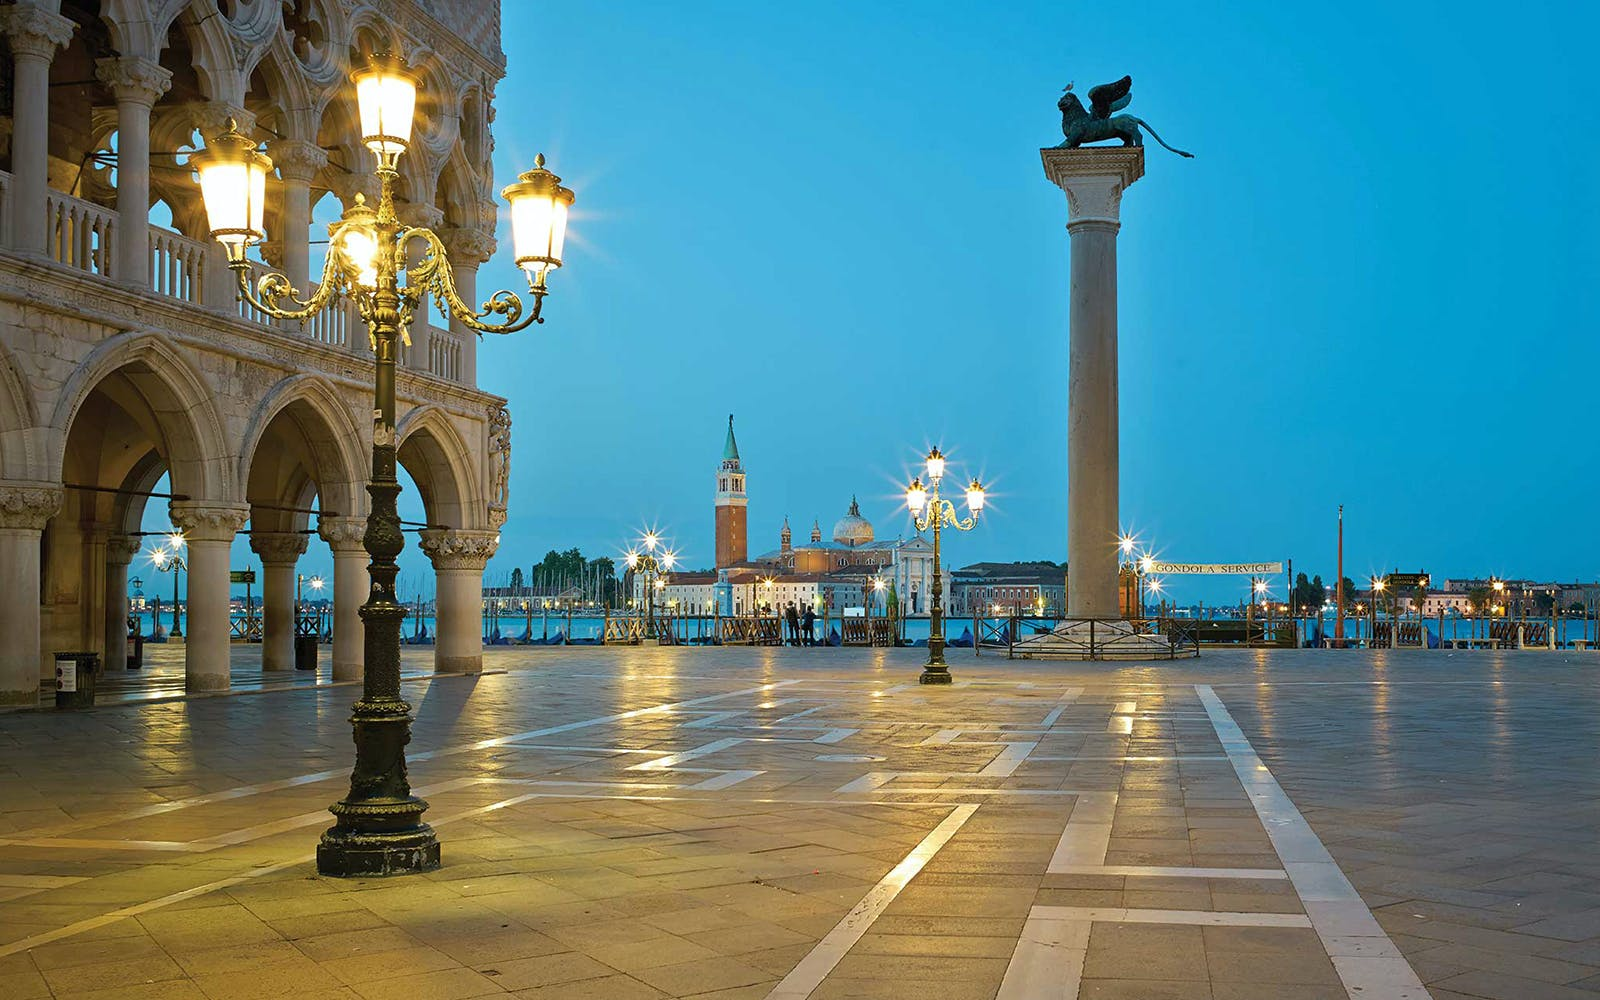 Skip The Line: St. Marks Basilica with Walking Tour of Venice